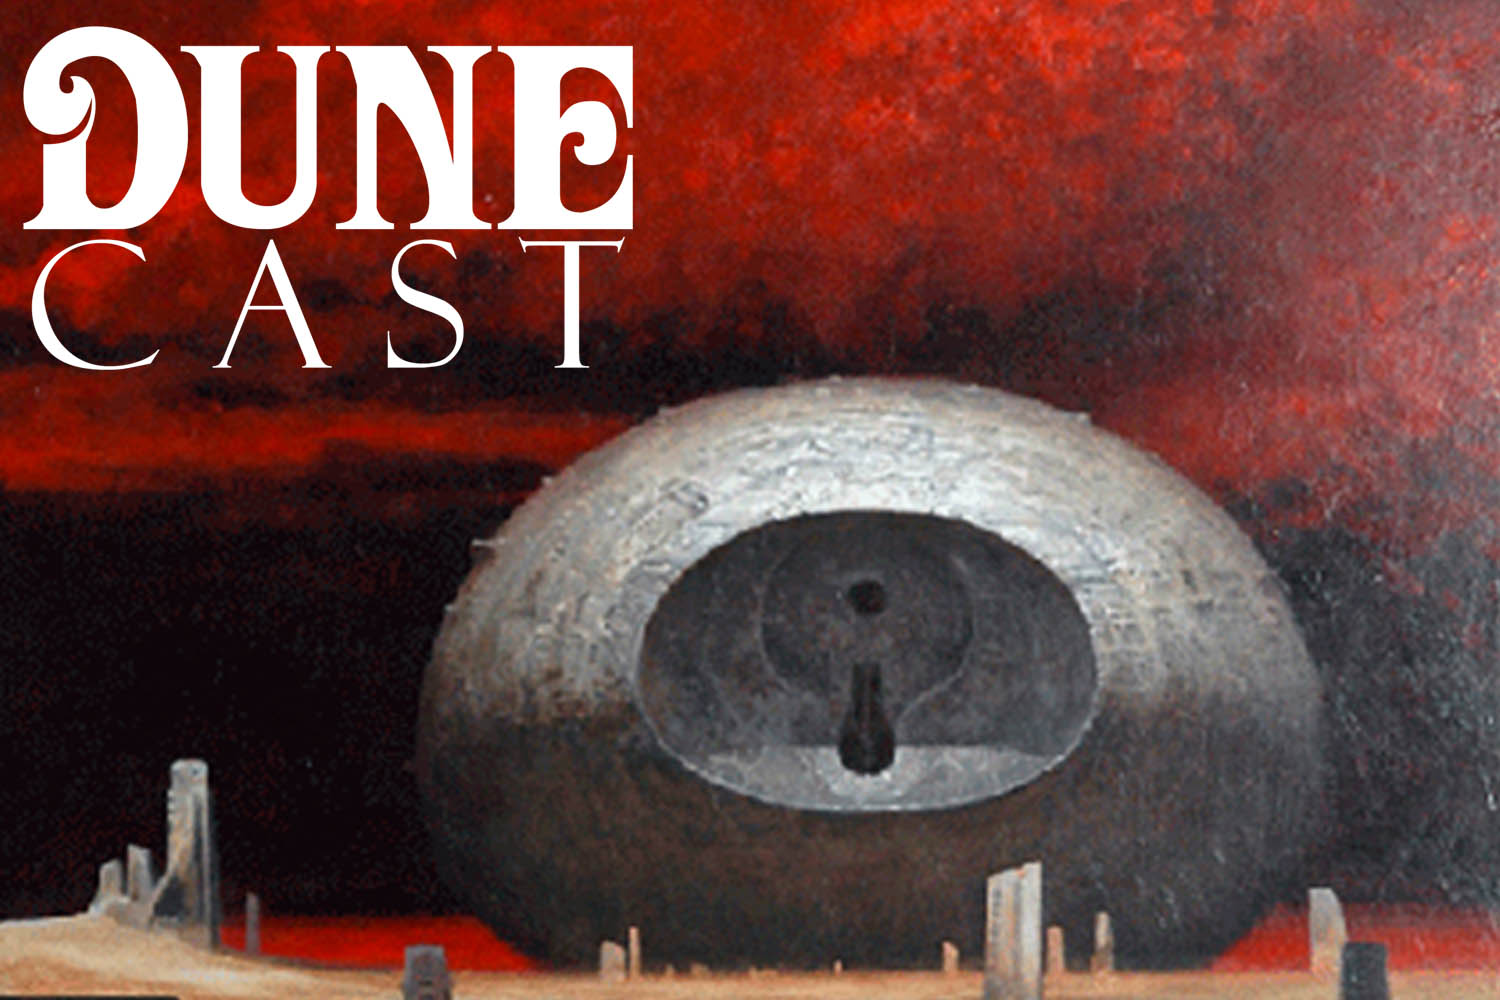 Chapterhouse: Dune Featured Image Dune Cast